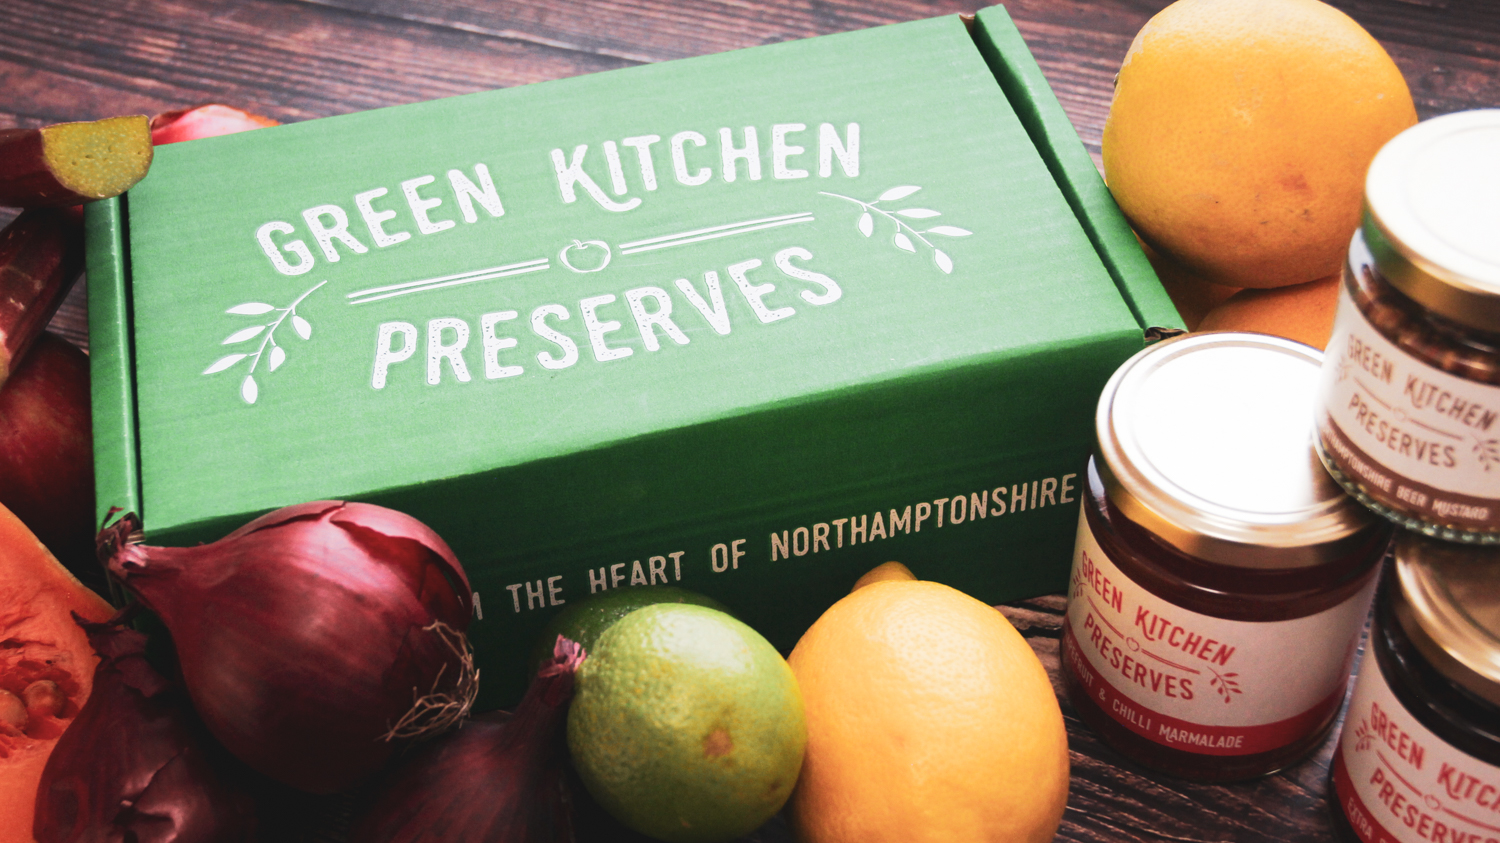 a green kitchen preserves gift box of jars containing jams, chutneys and marmalades on a wooden background with fruit and vegetables on a wooden background